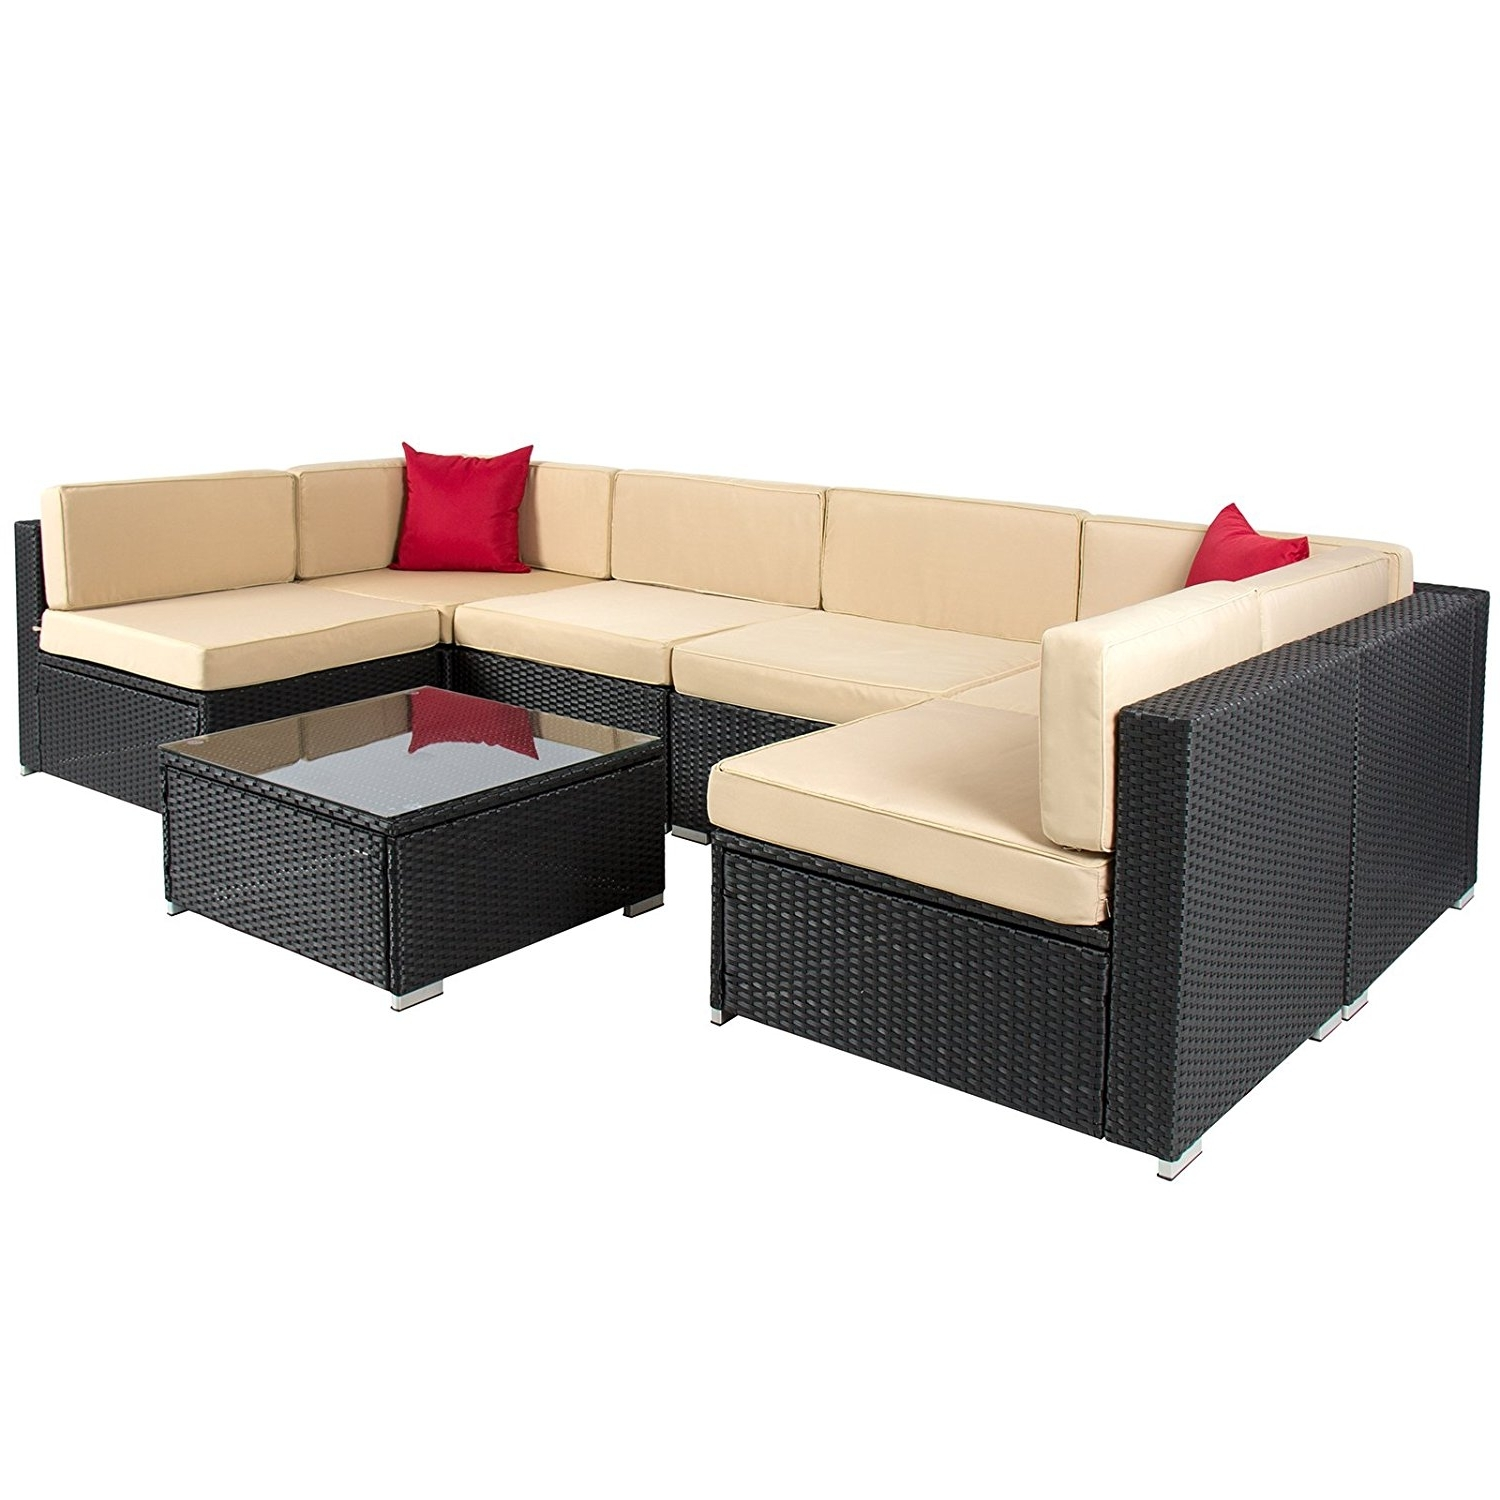 Preferred Amazon: Best Choiceproducts 7 Piece Outdoor Patio Garden Inside Outdoor Sofa Chairs (View 11 of 15)